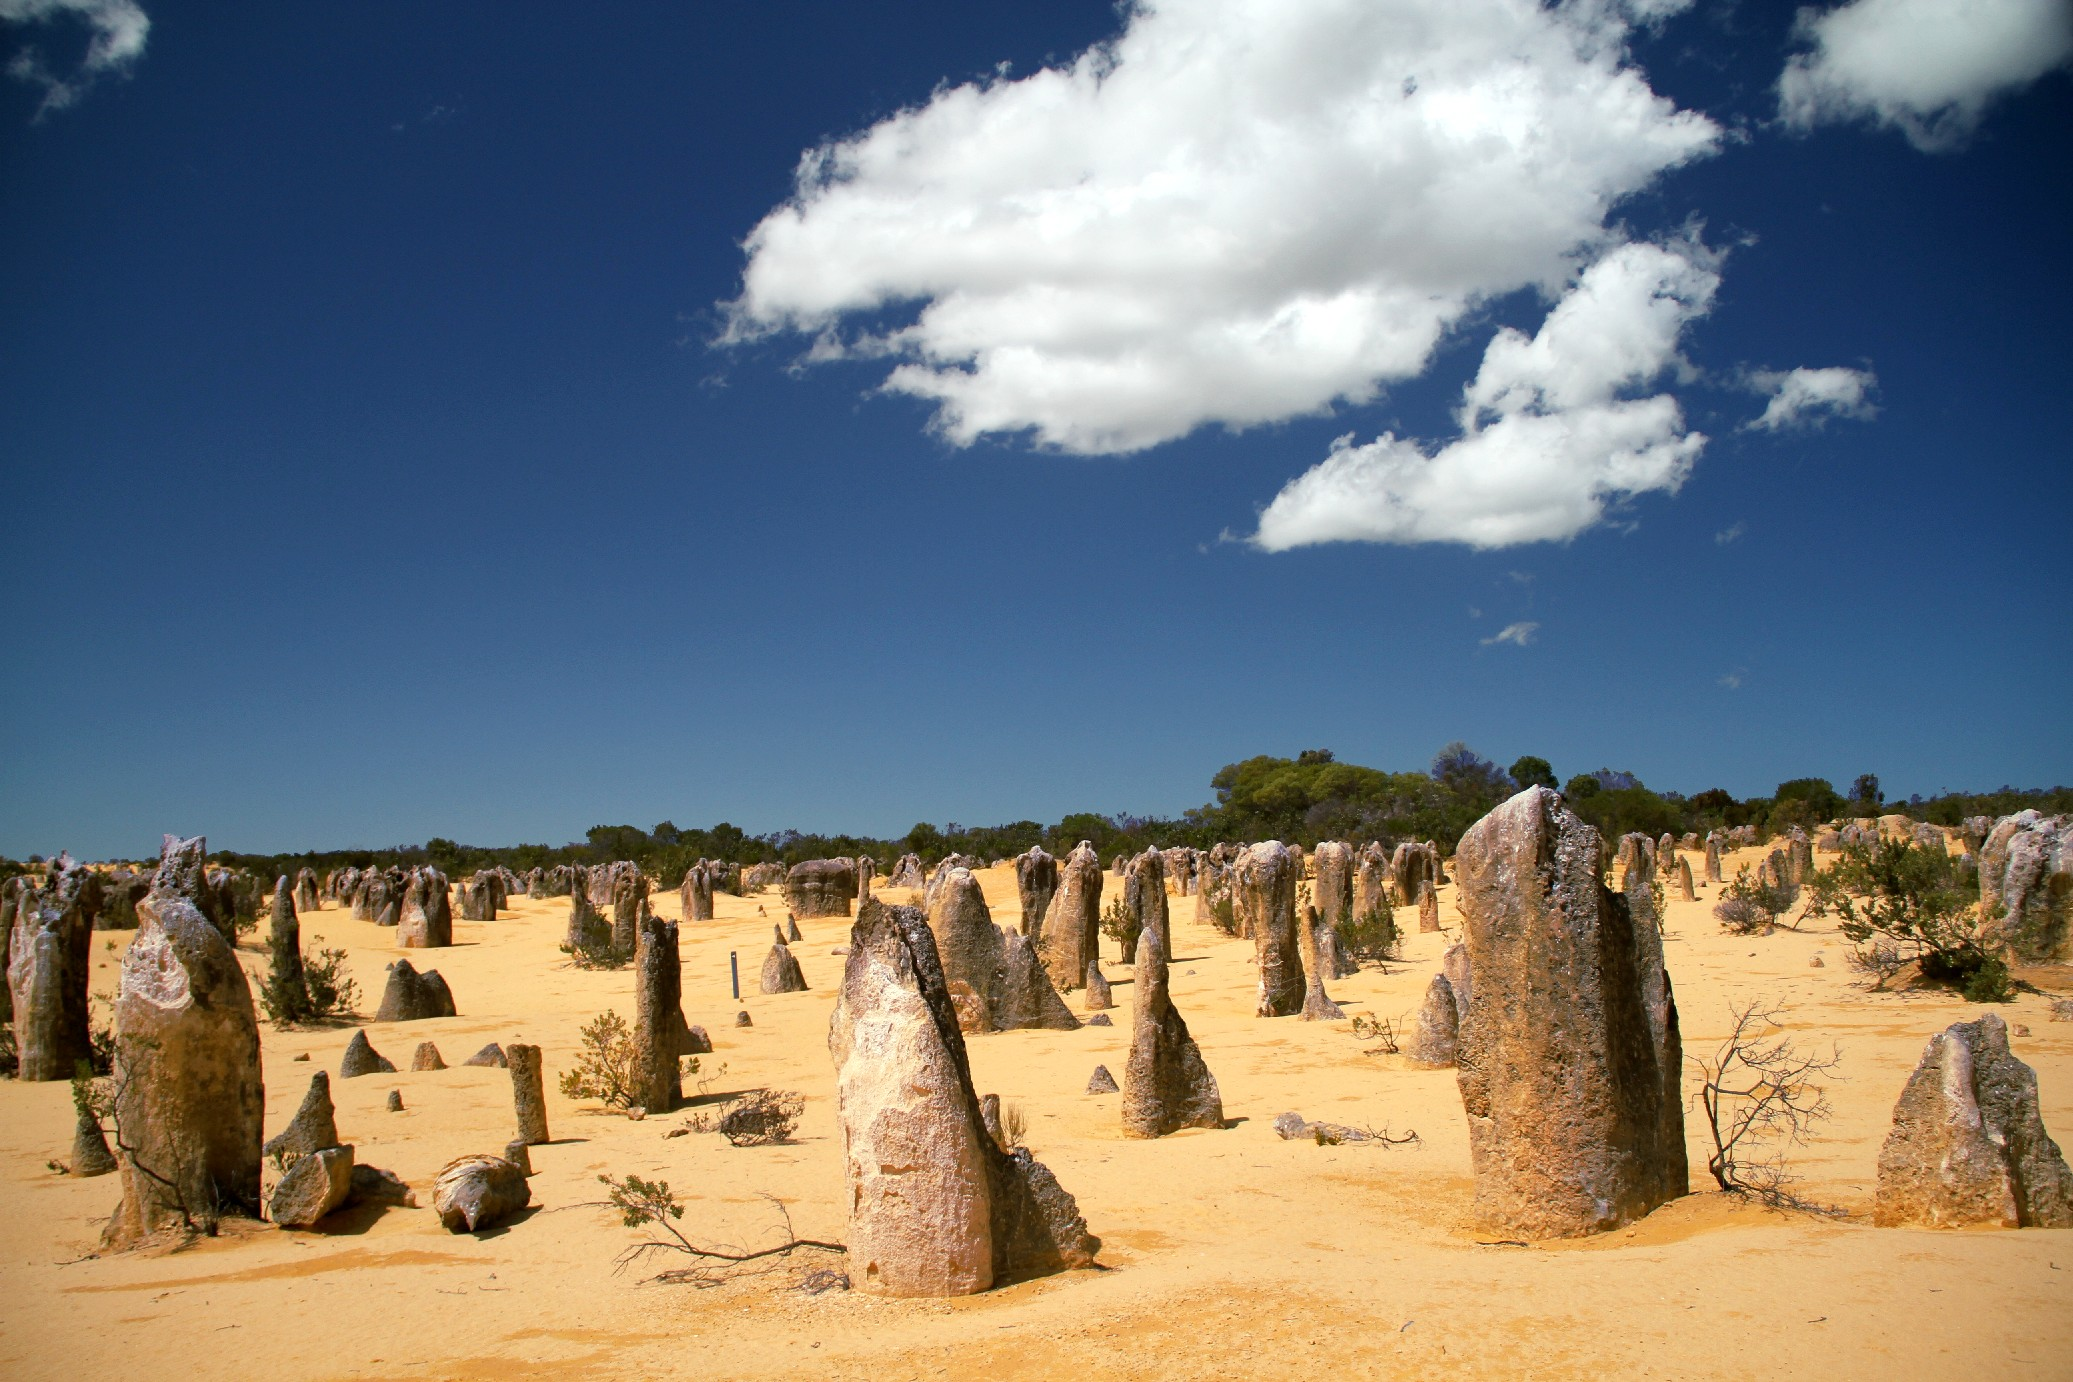 Pinnacles Desert, na Austrália Ocidental (foto: Eduardo Vessoni)